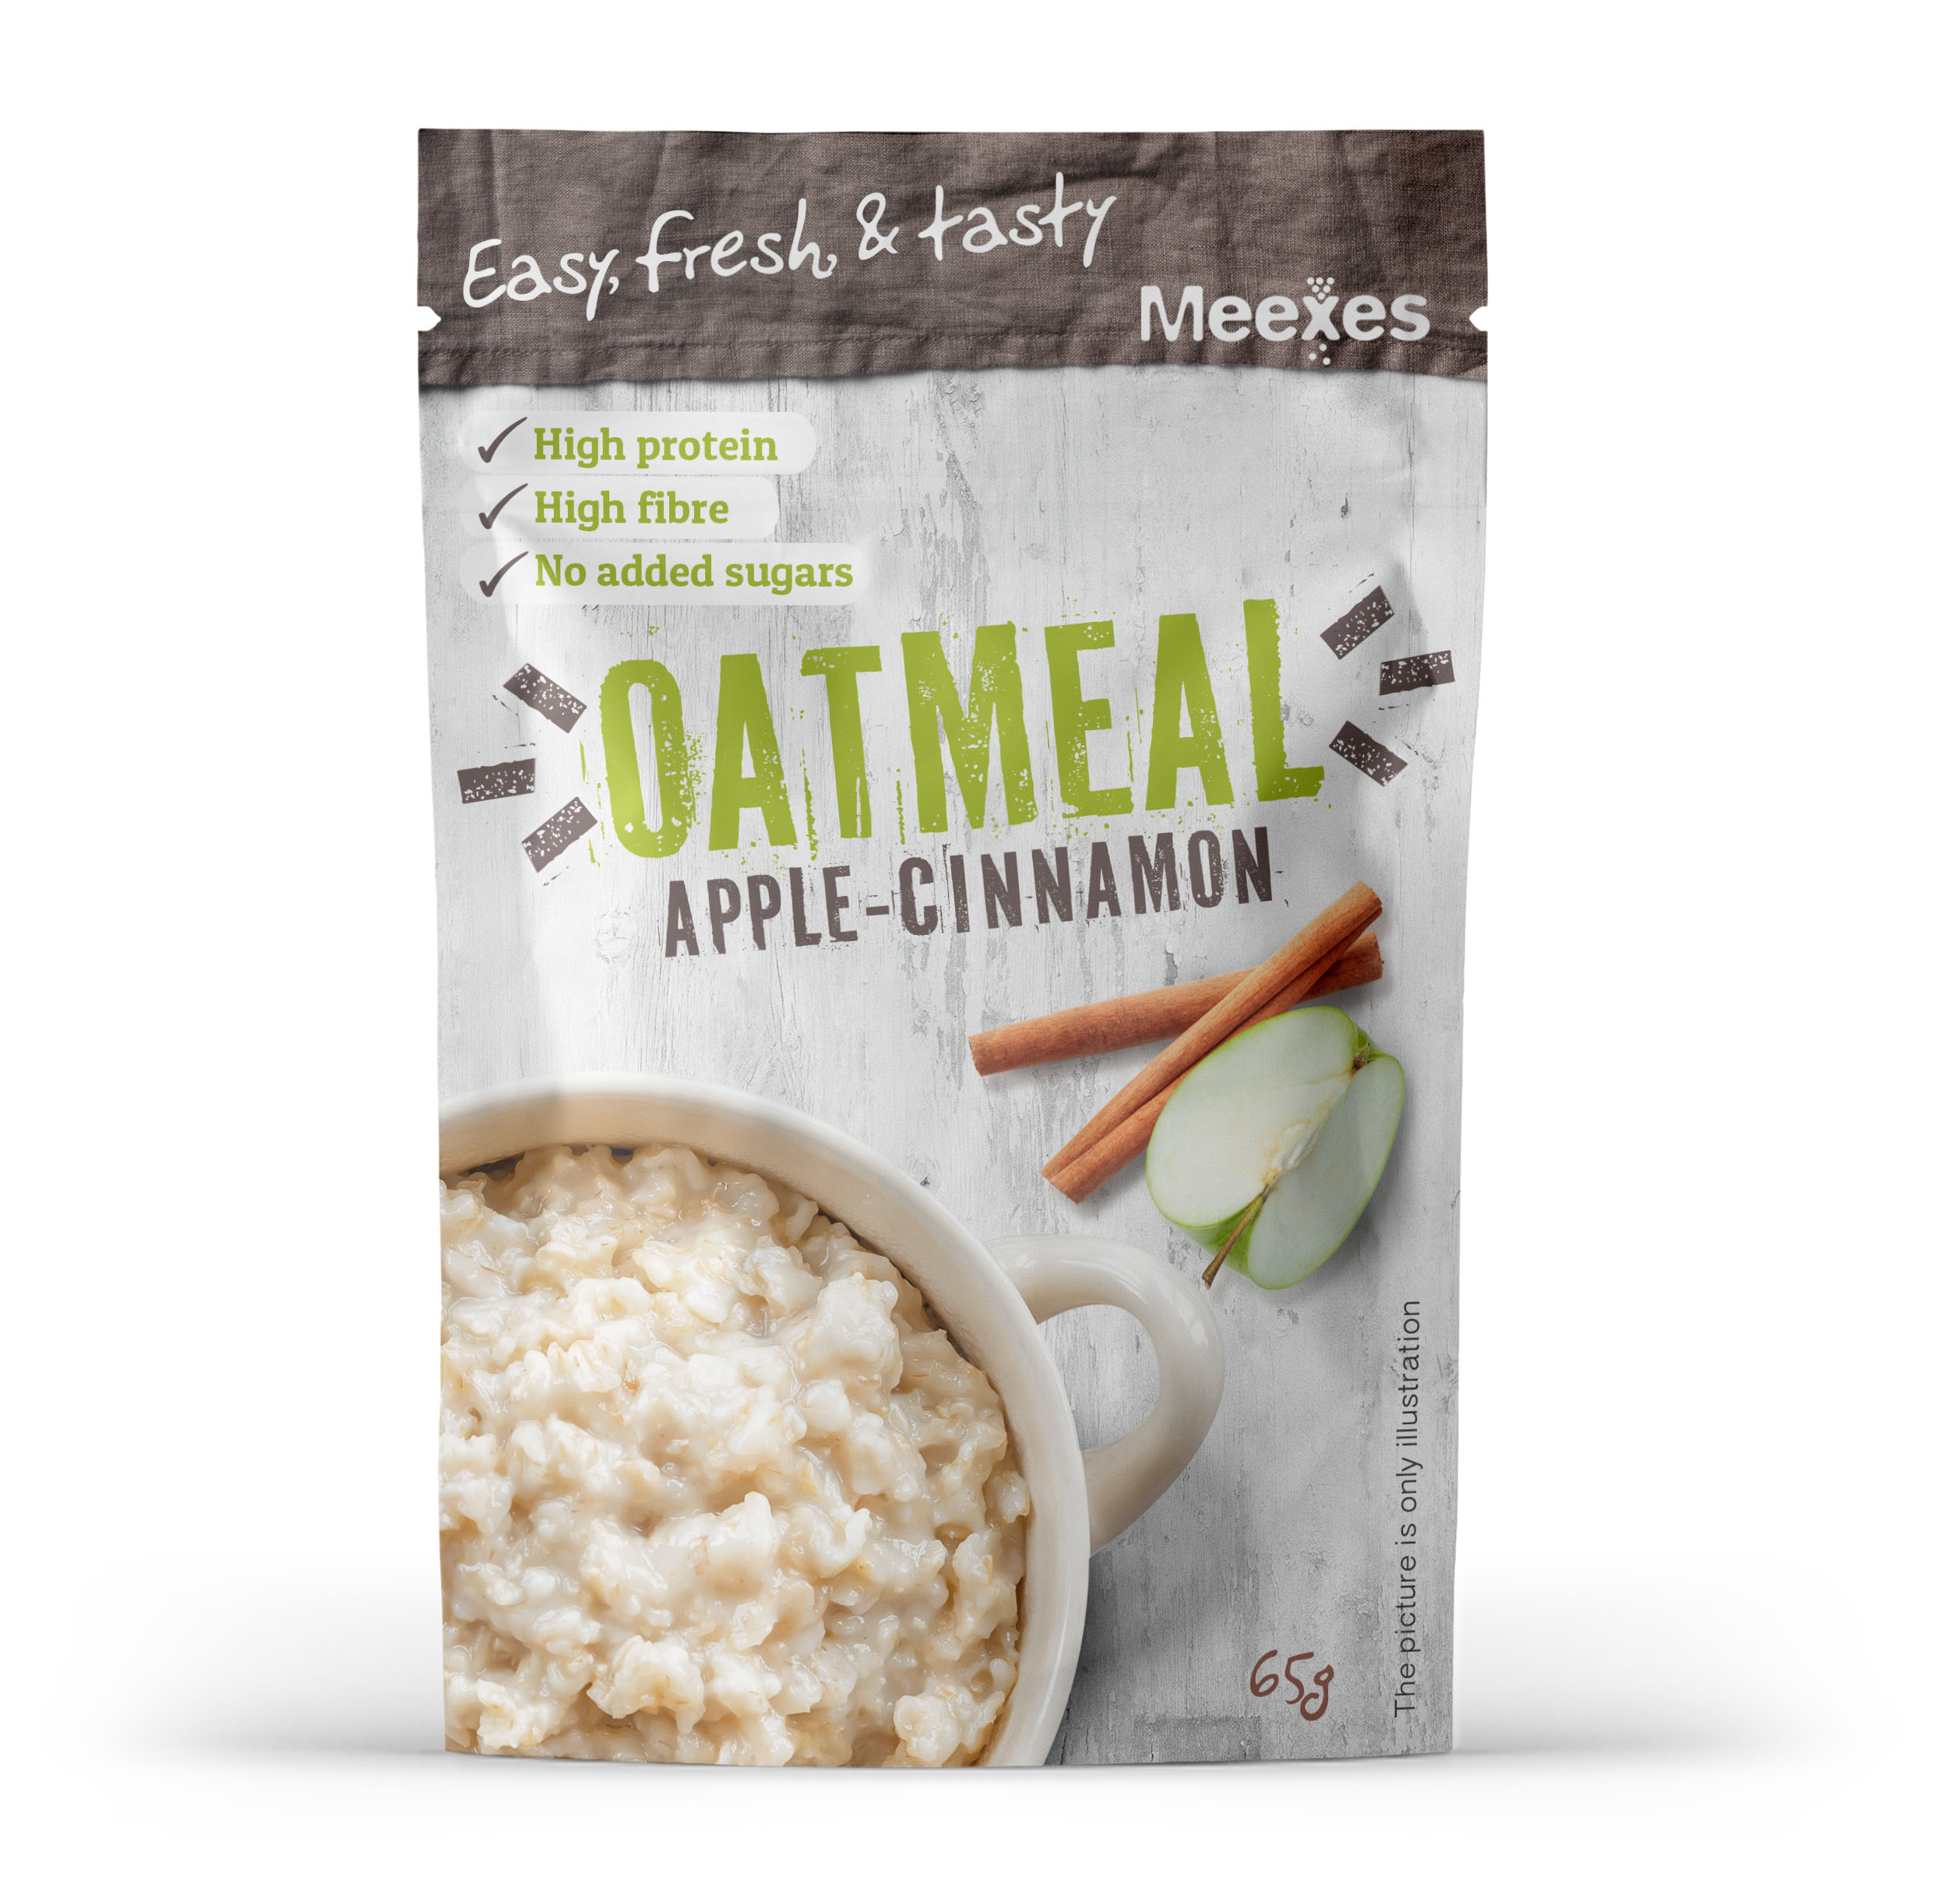 meexes OATMEAL applecinnamon 70x110